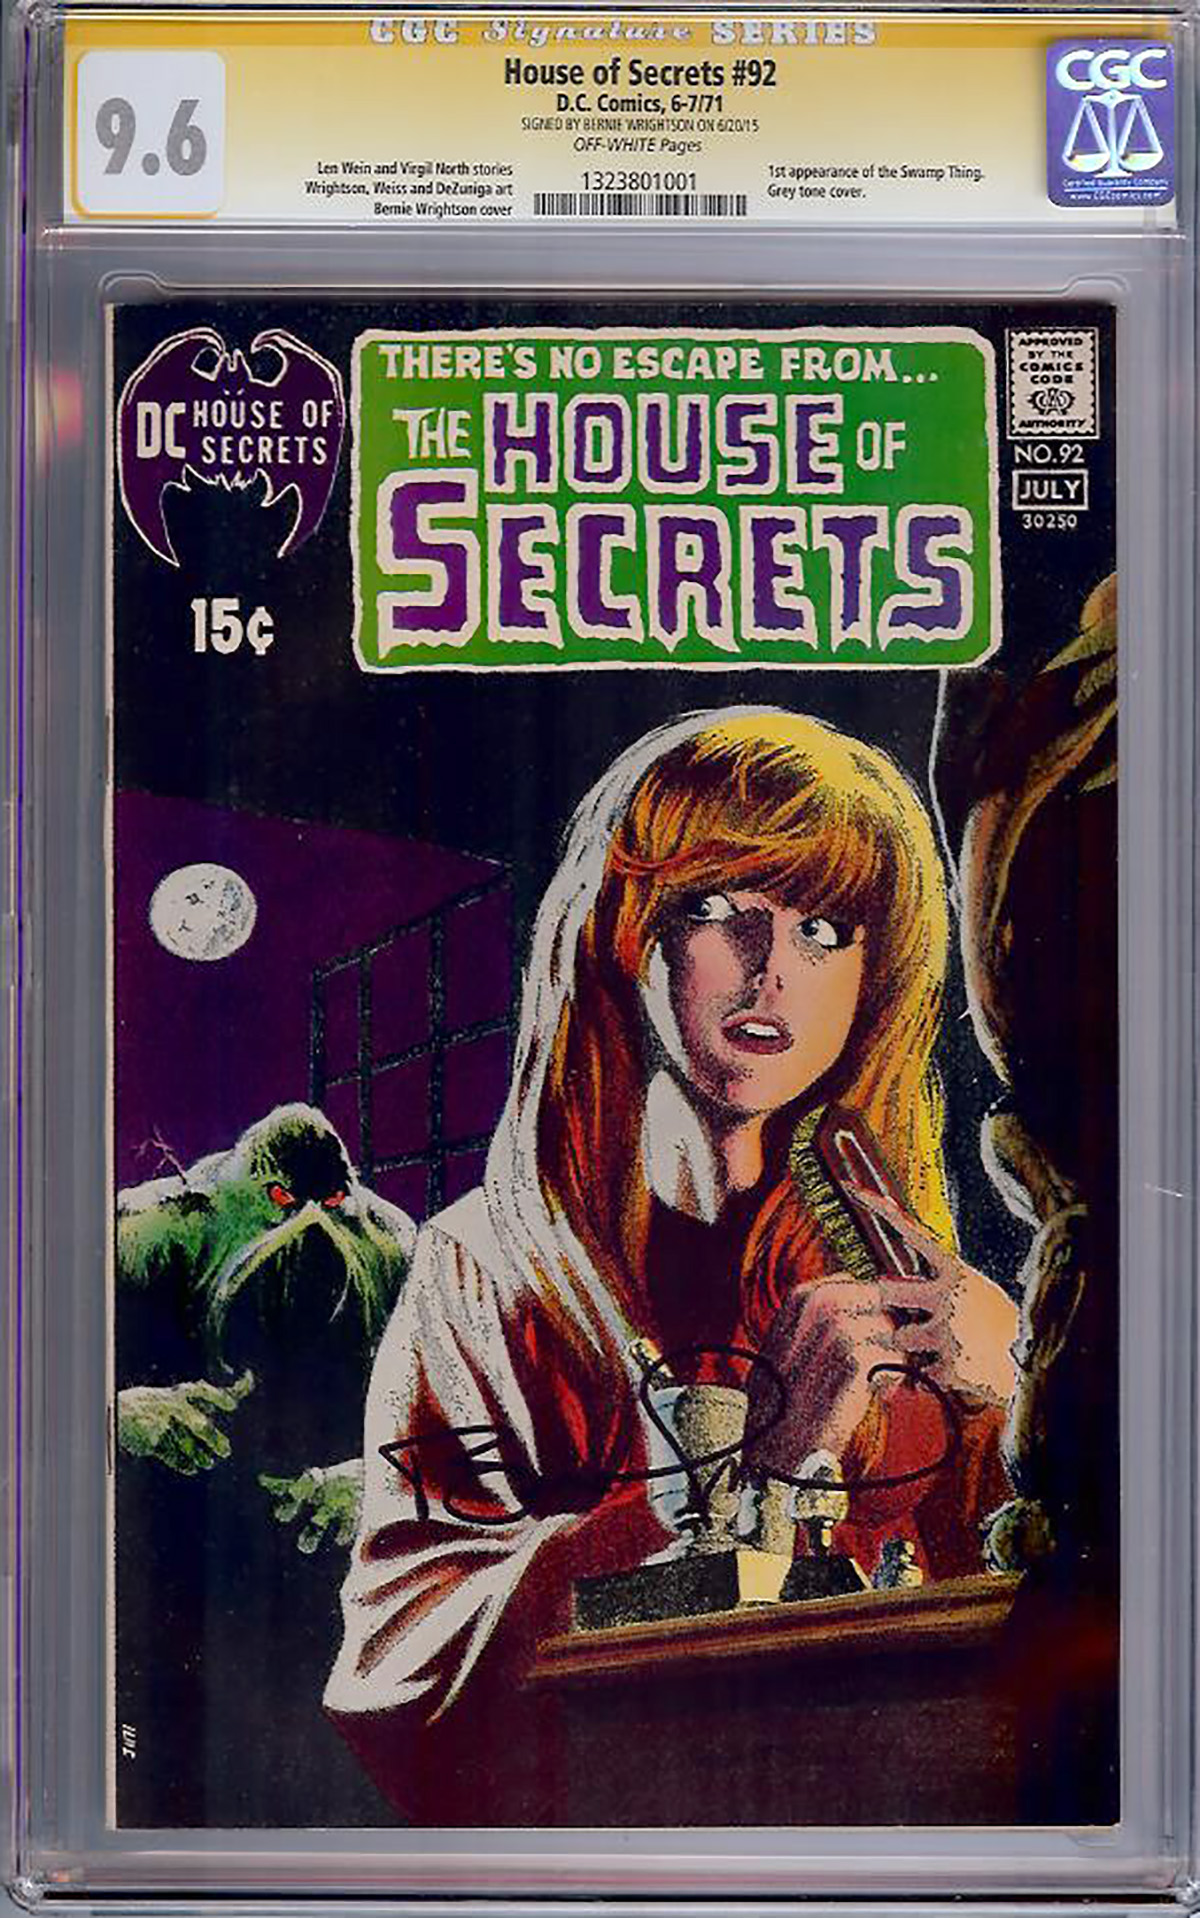 House of Secrets #92 CGC 9.6 ow CGC Signature SERIES